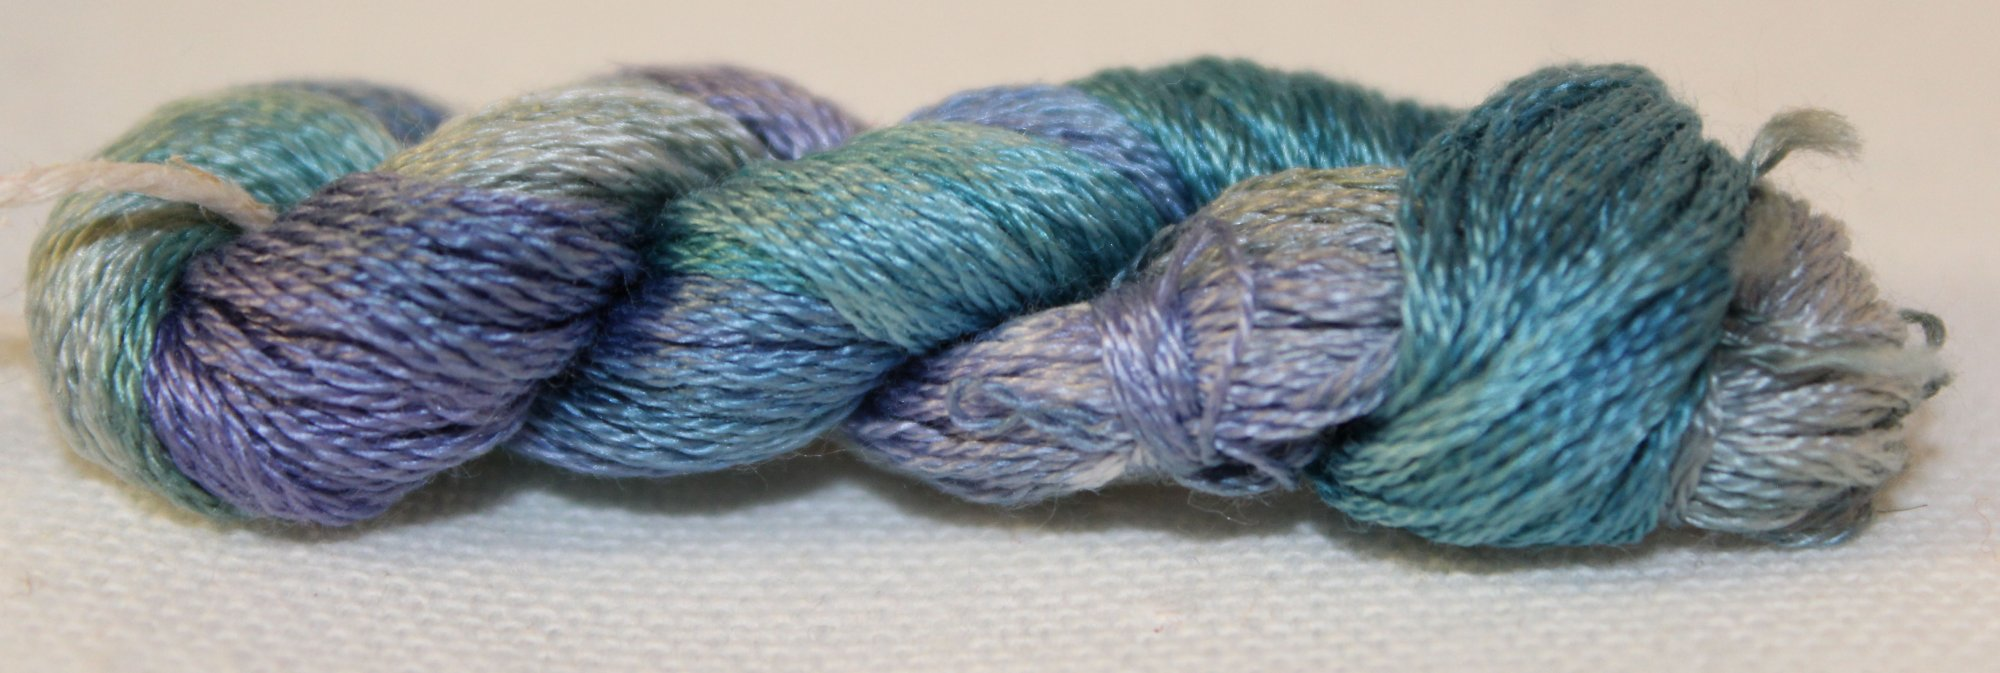 Stormy Seas- Hand-Dyed Embroidery Floss